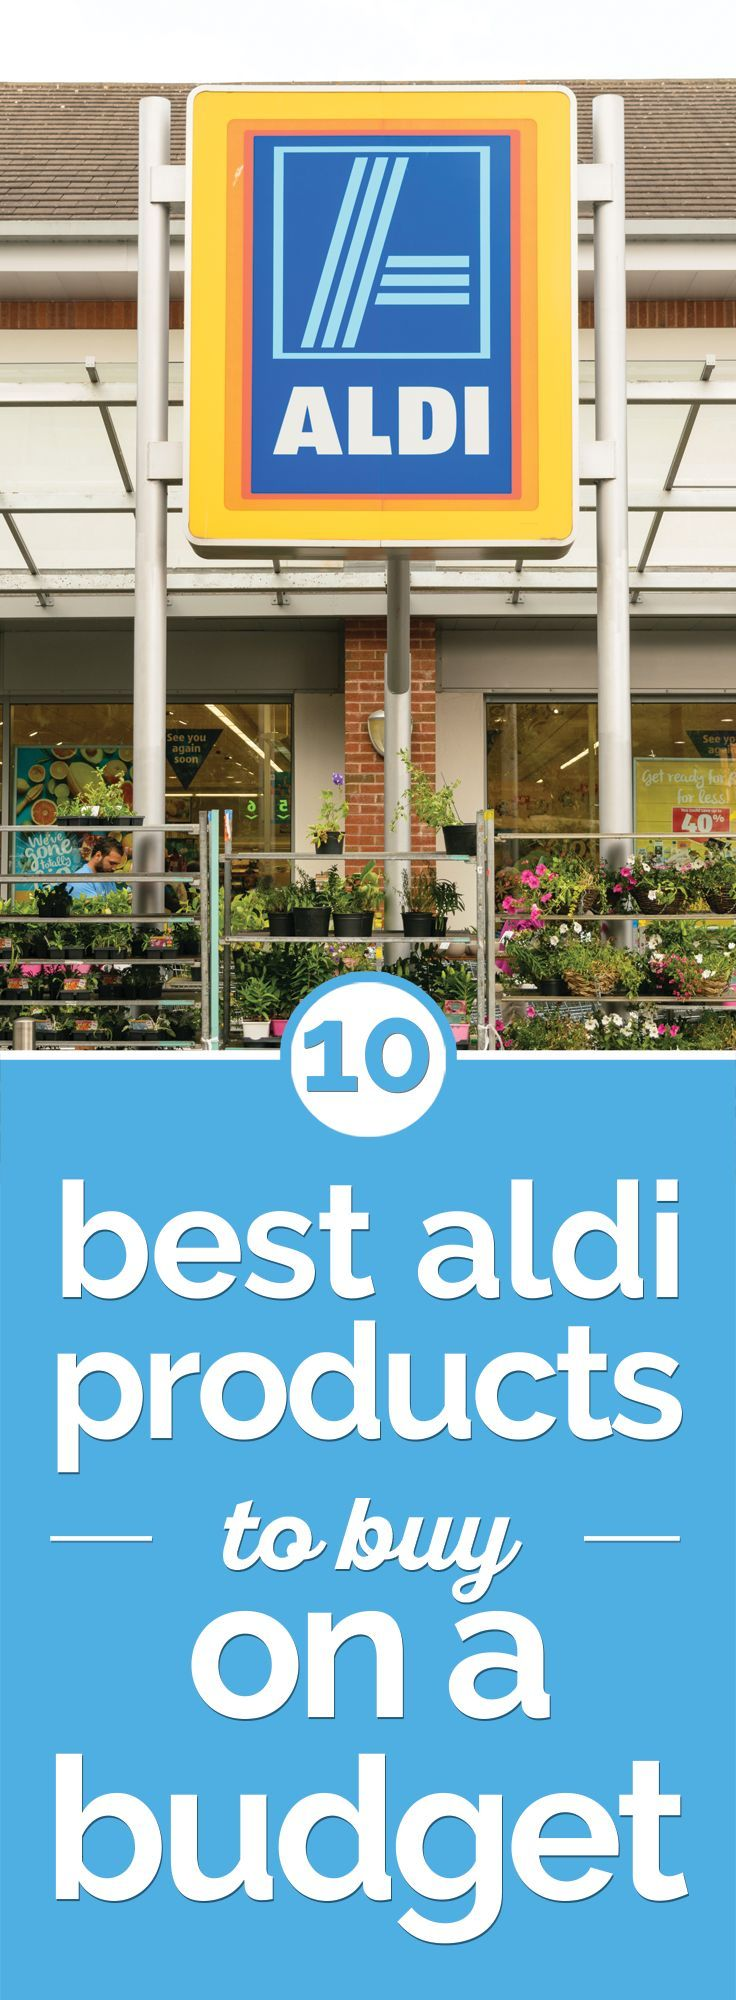 10 Best Aldi Products to Buy on a Budget